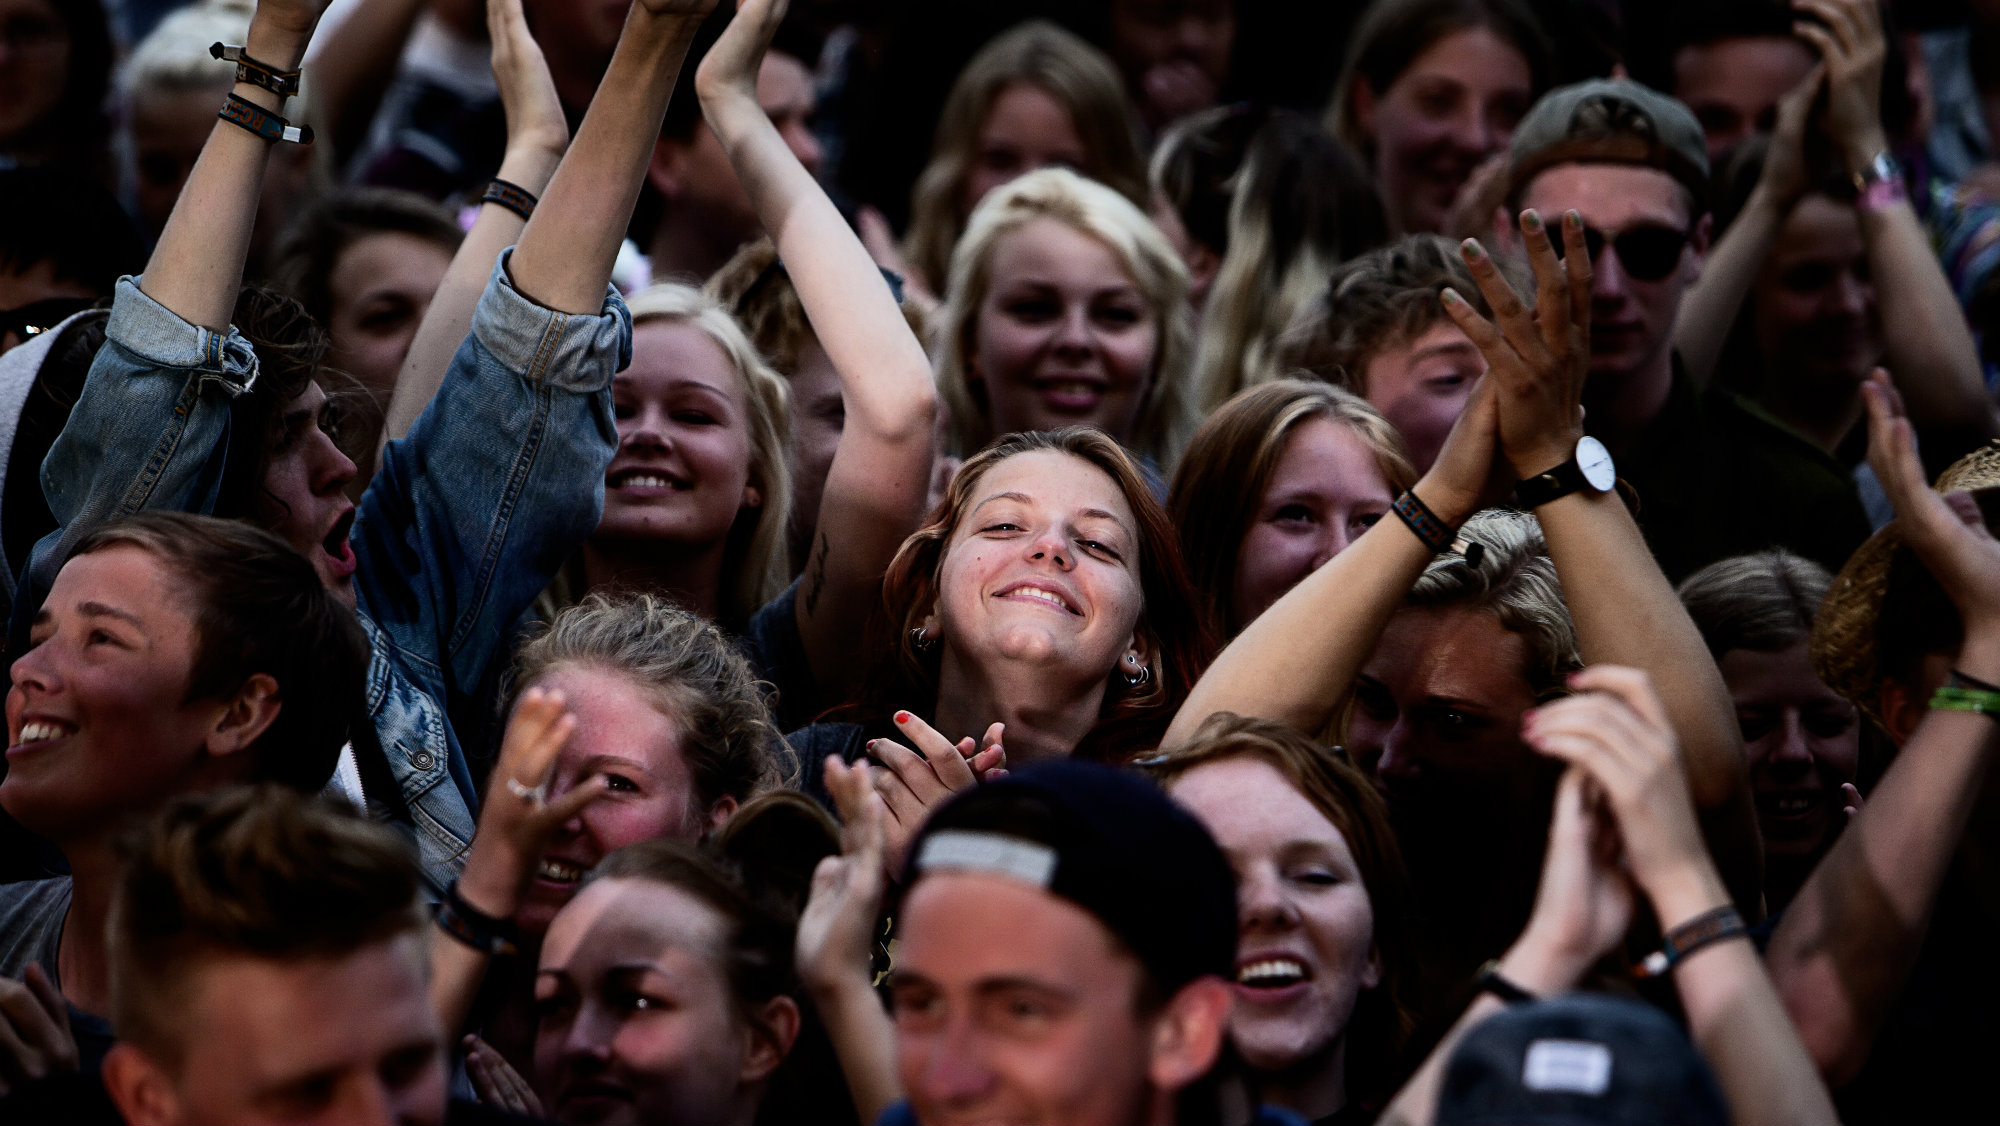 Festival goers dance as they attend a concert by Danish singer Vinnie Who during the official opening of the Roskilde music festival 2013 in Roskilde, Denmark